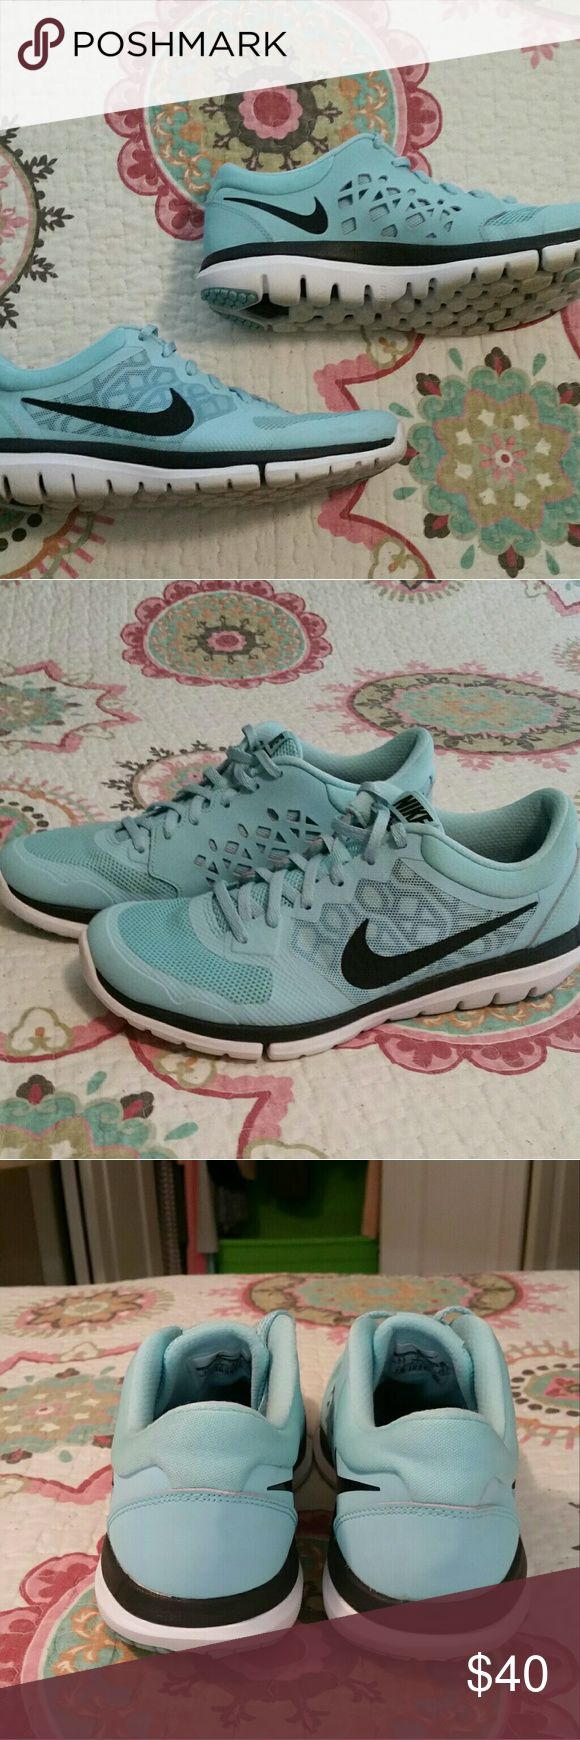 Nike Women's Flex Run Shoes These shoes are a size 9.5. They have been worn a decent amount of times, but they are still in good condition. No holes or stains. Just some dirt on the bottoms (pic 4).   *No trades, please. *Will accept reasonable offers. Nike Shoes Sneakers